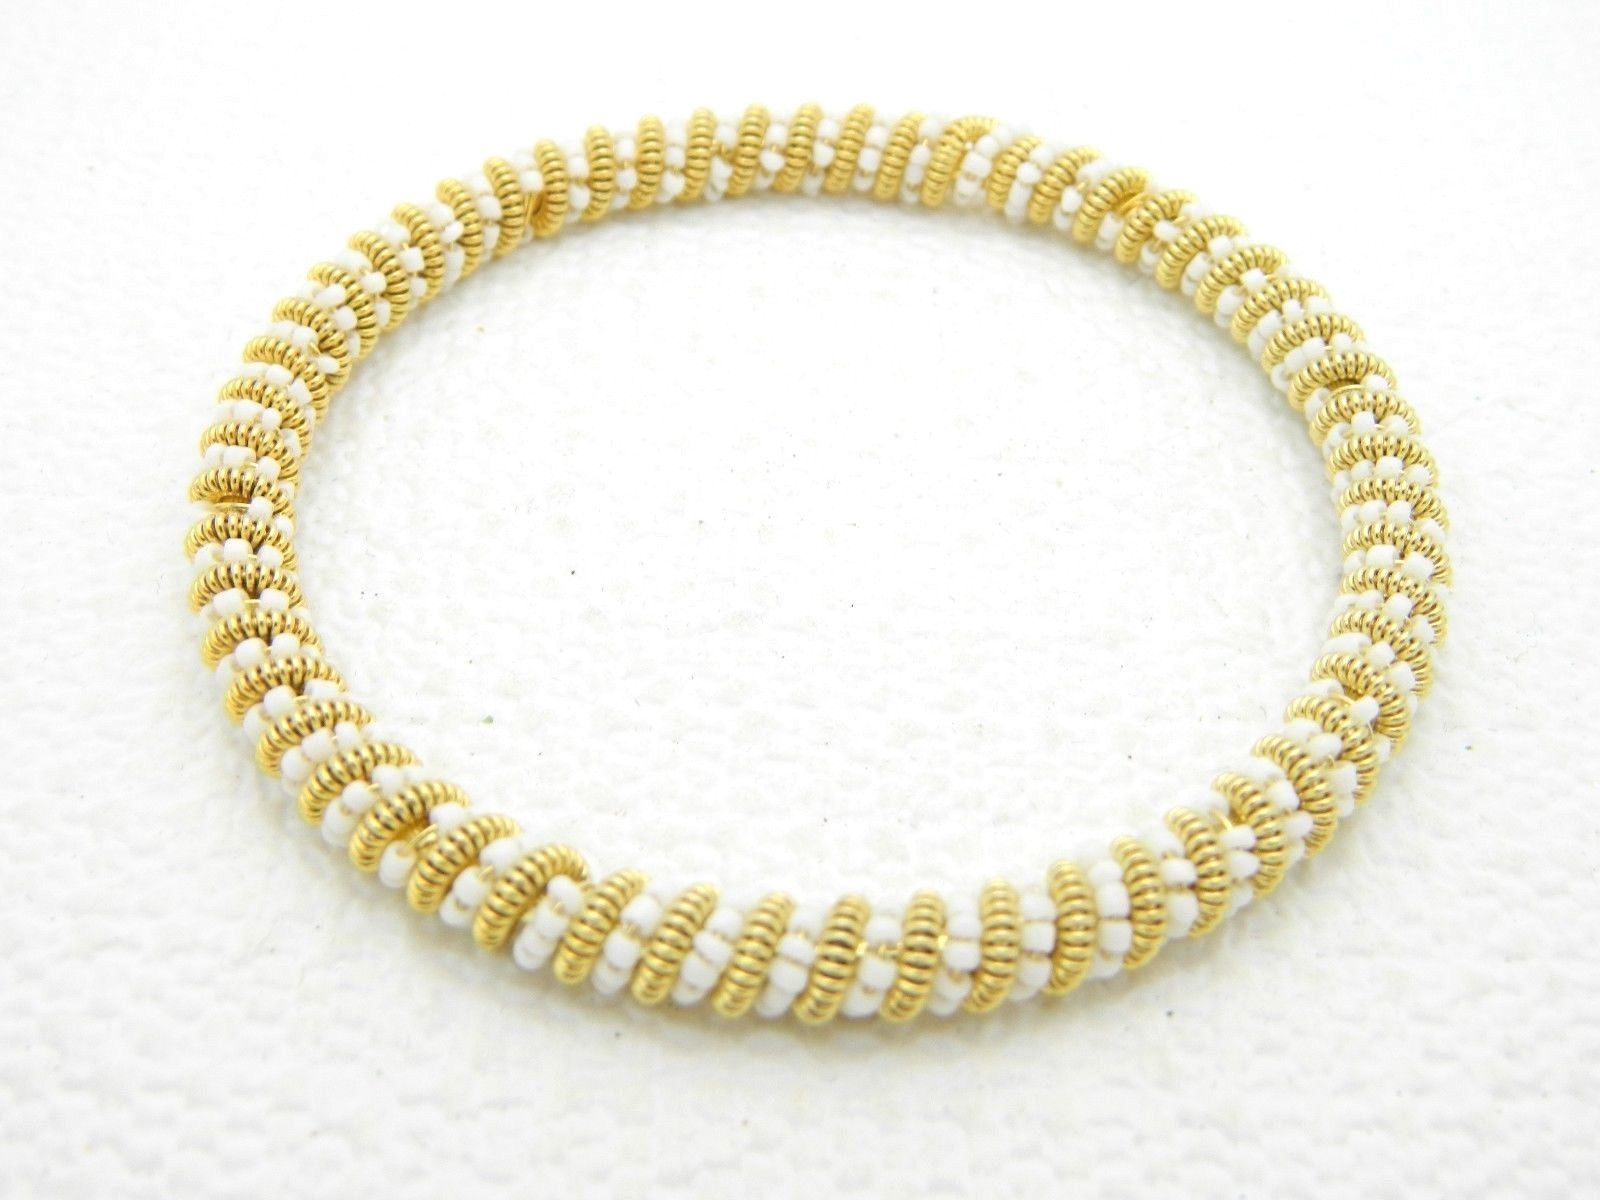 VTG Gold Tone White Glass Bead Twist Bangle Bracelet